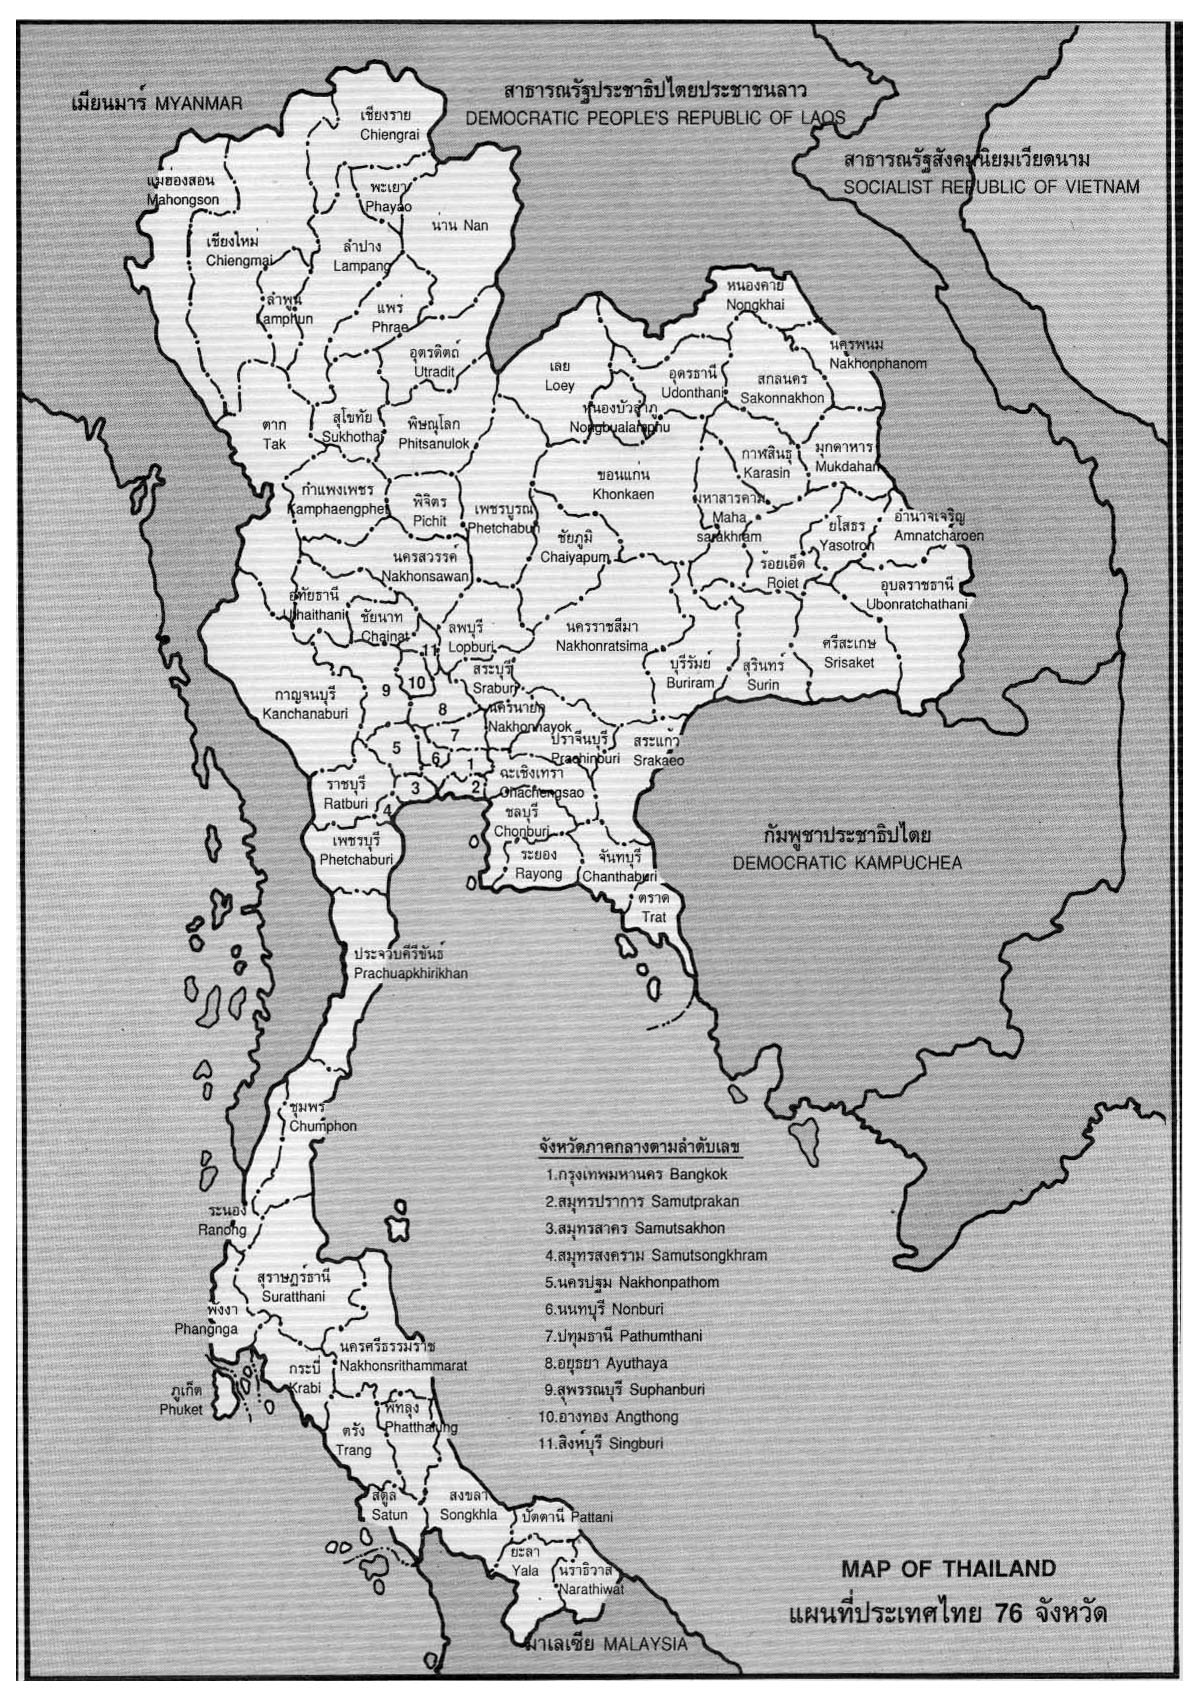 Detailed provinces map of Thailand Thailand detailed provinces map